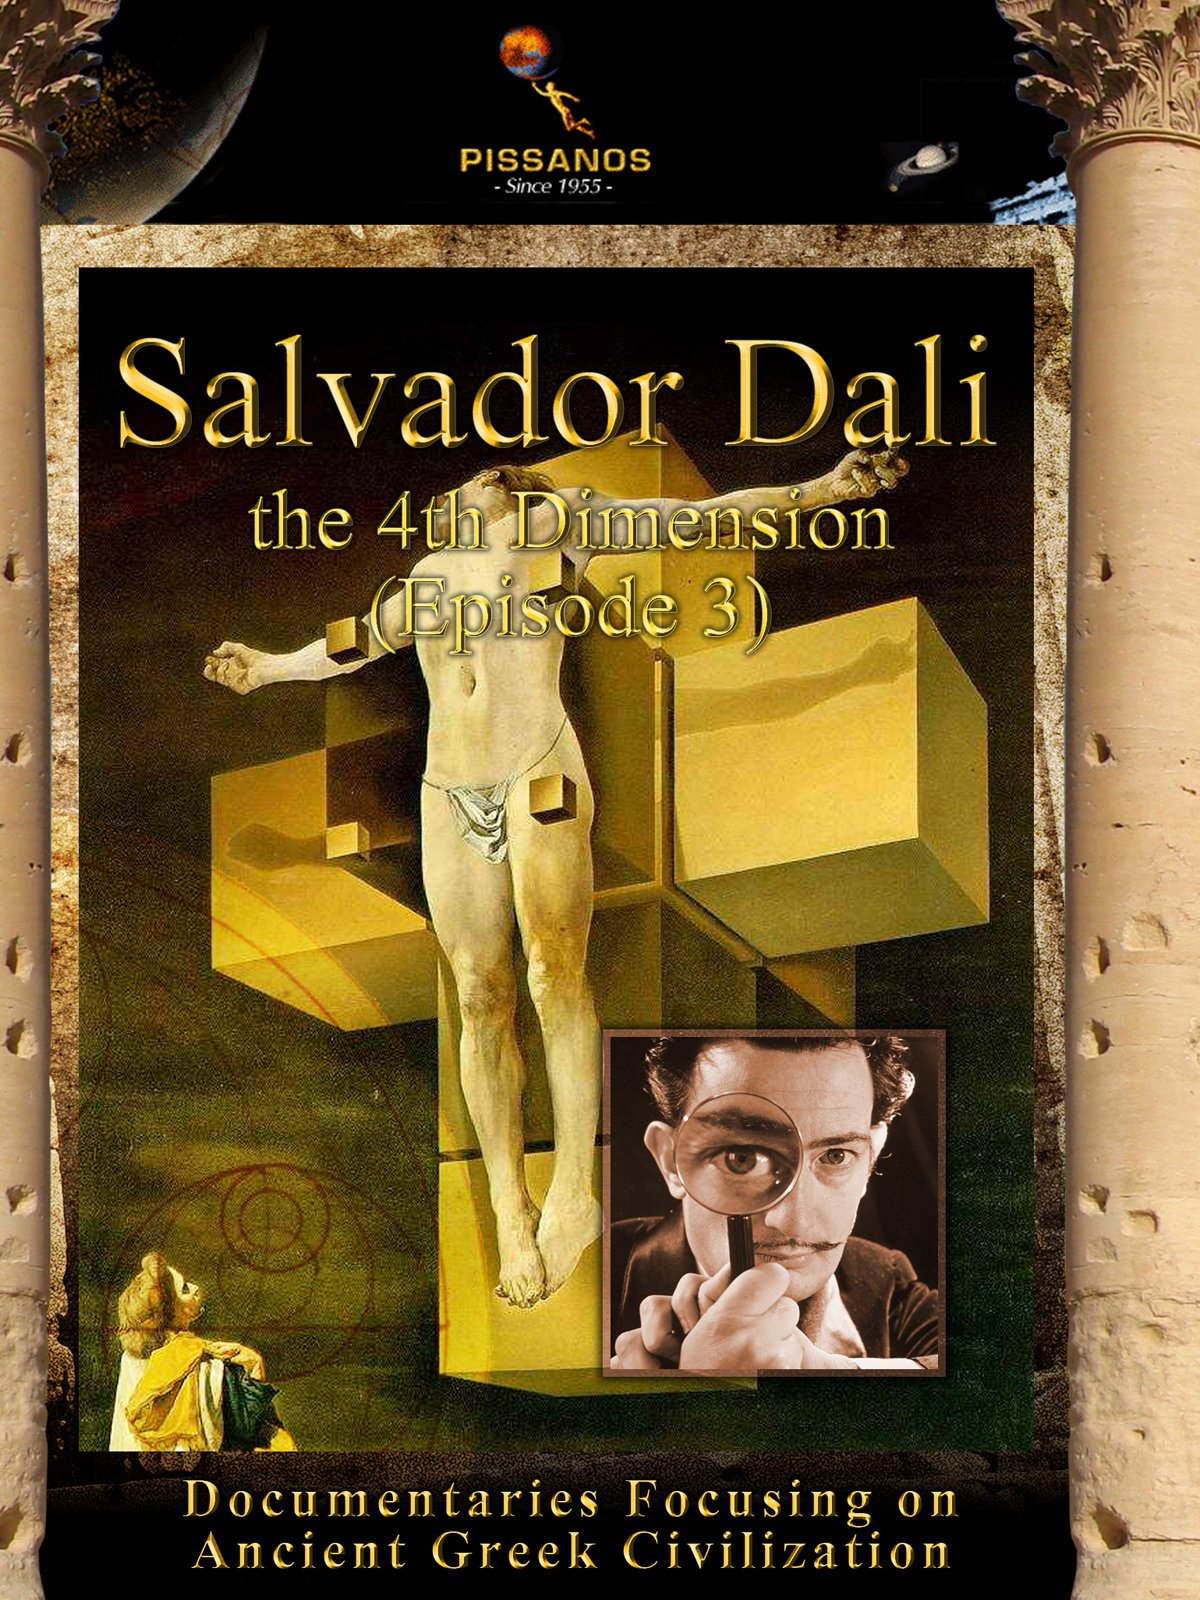 Salvador Dali the 4th Dimension - Chronicle of an Artistic Genius